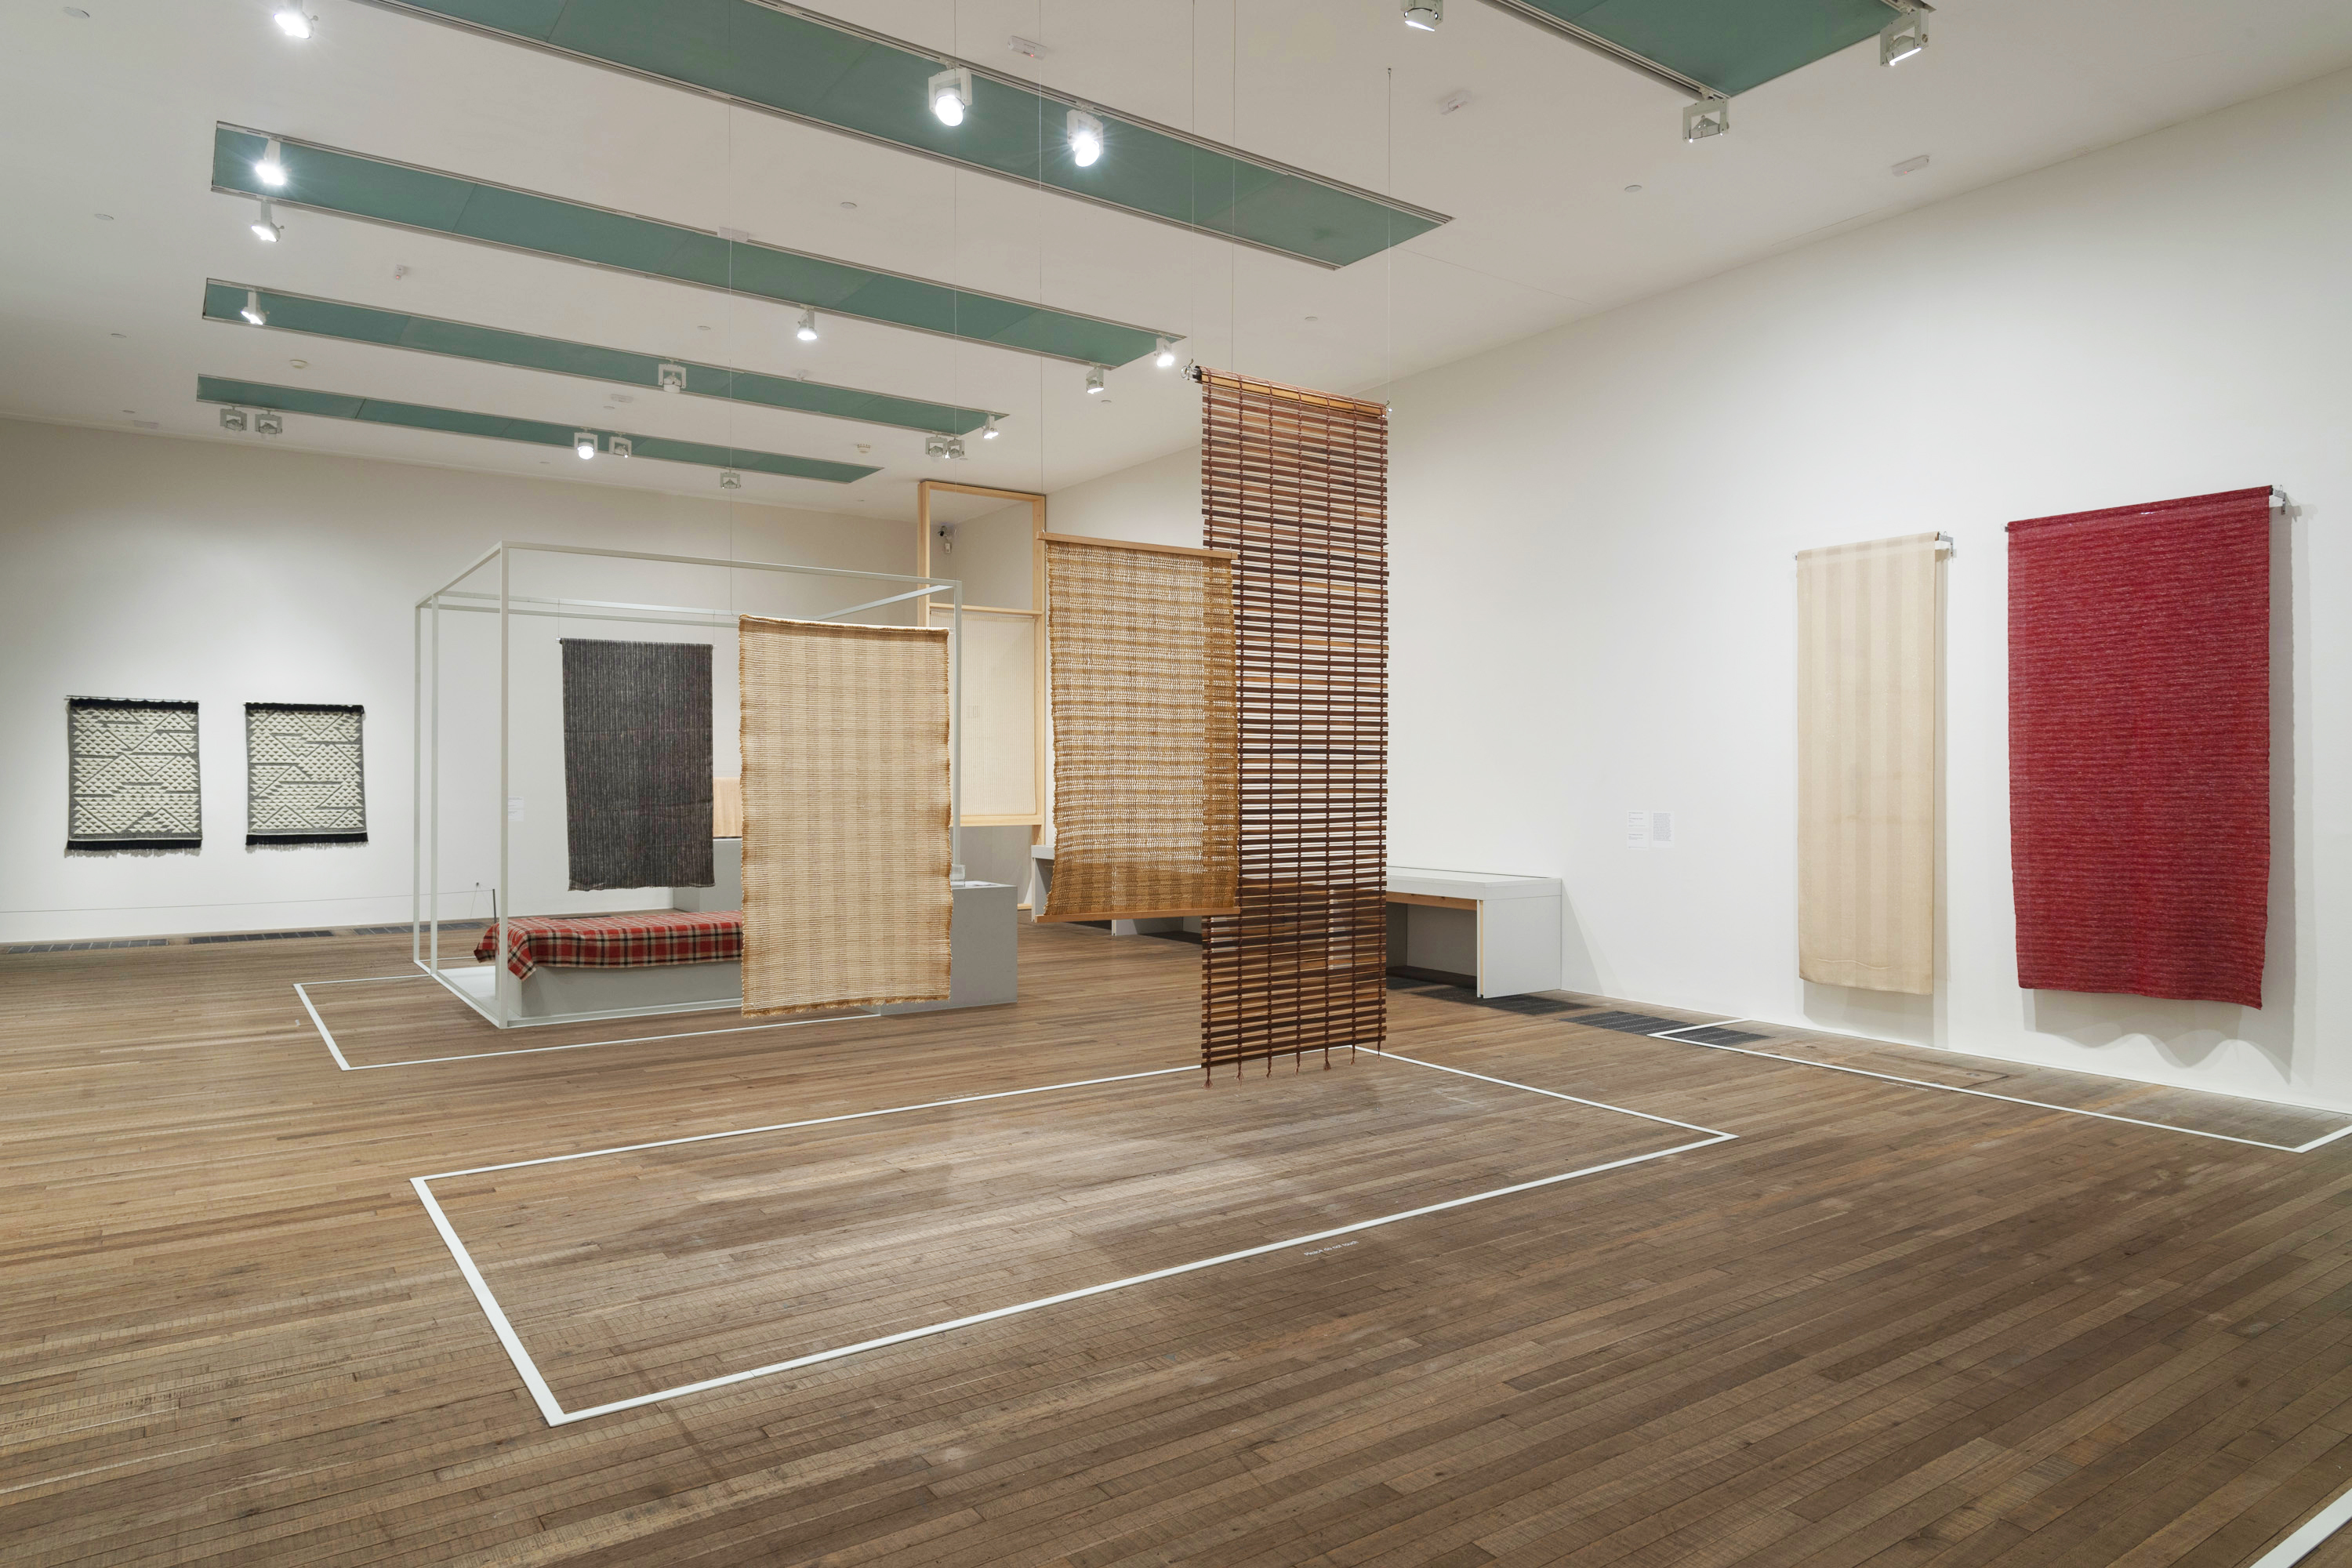 """Installation view of Anni Albers at Tate Modern"" 2018 Image Courtesy of the Josef and Anni Albers Foundation"